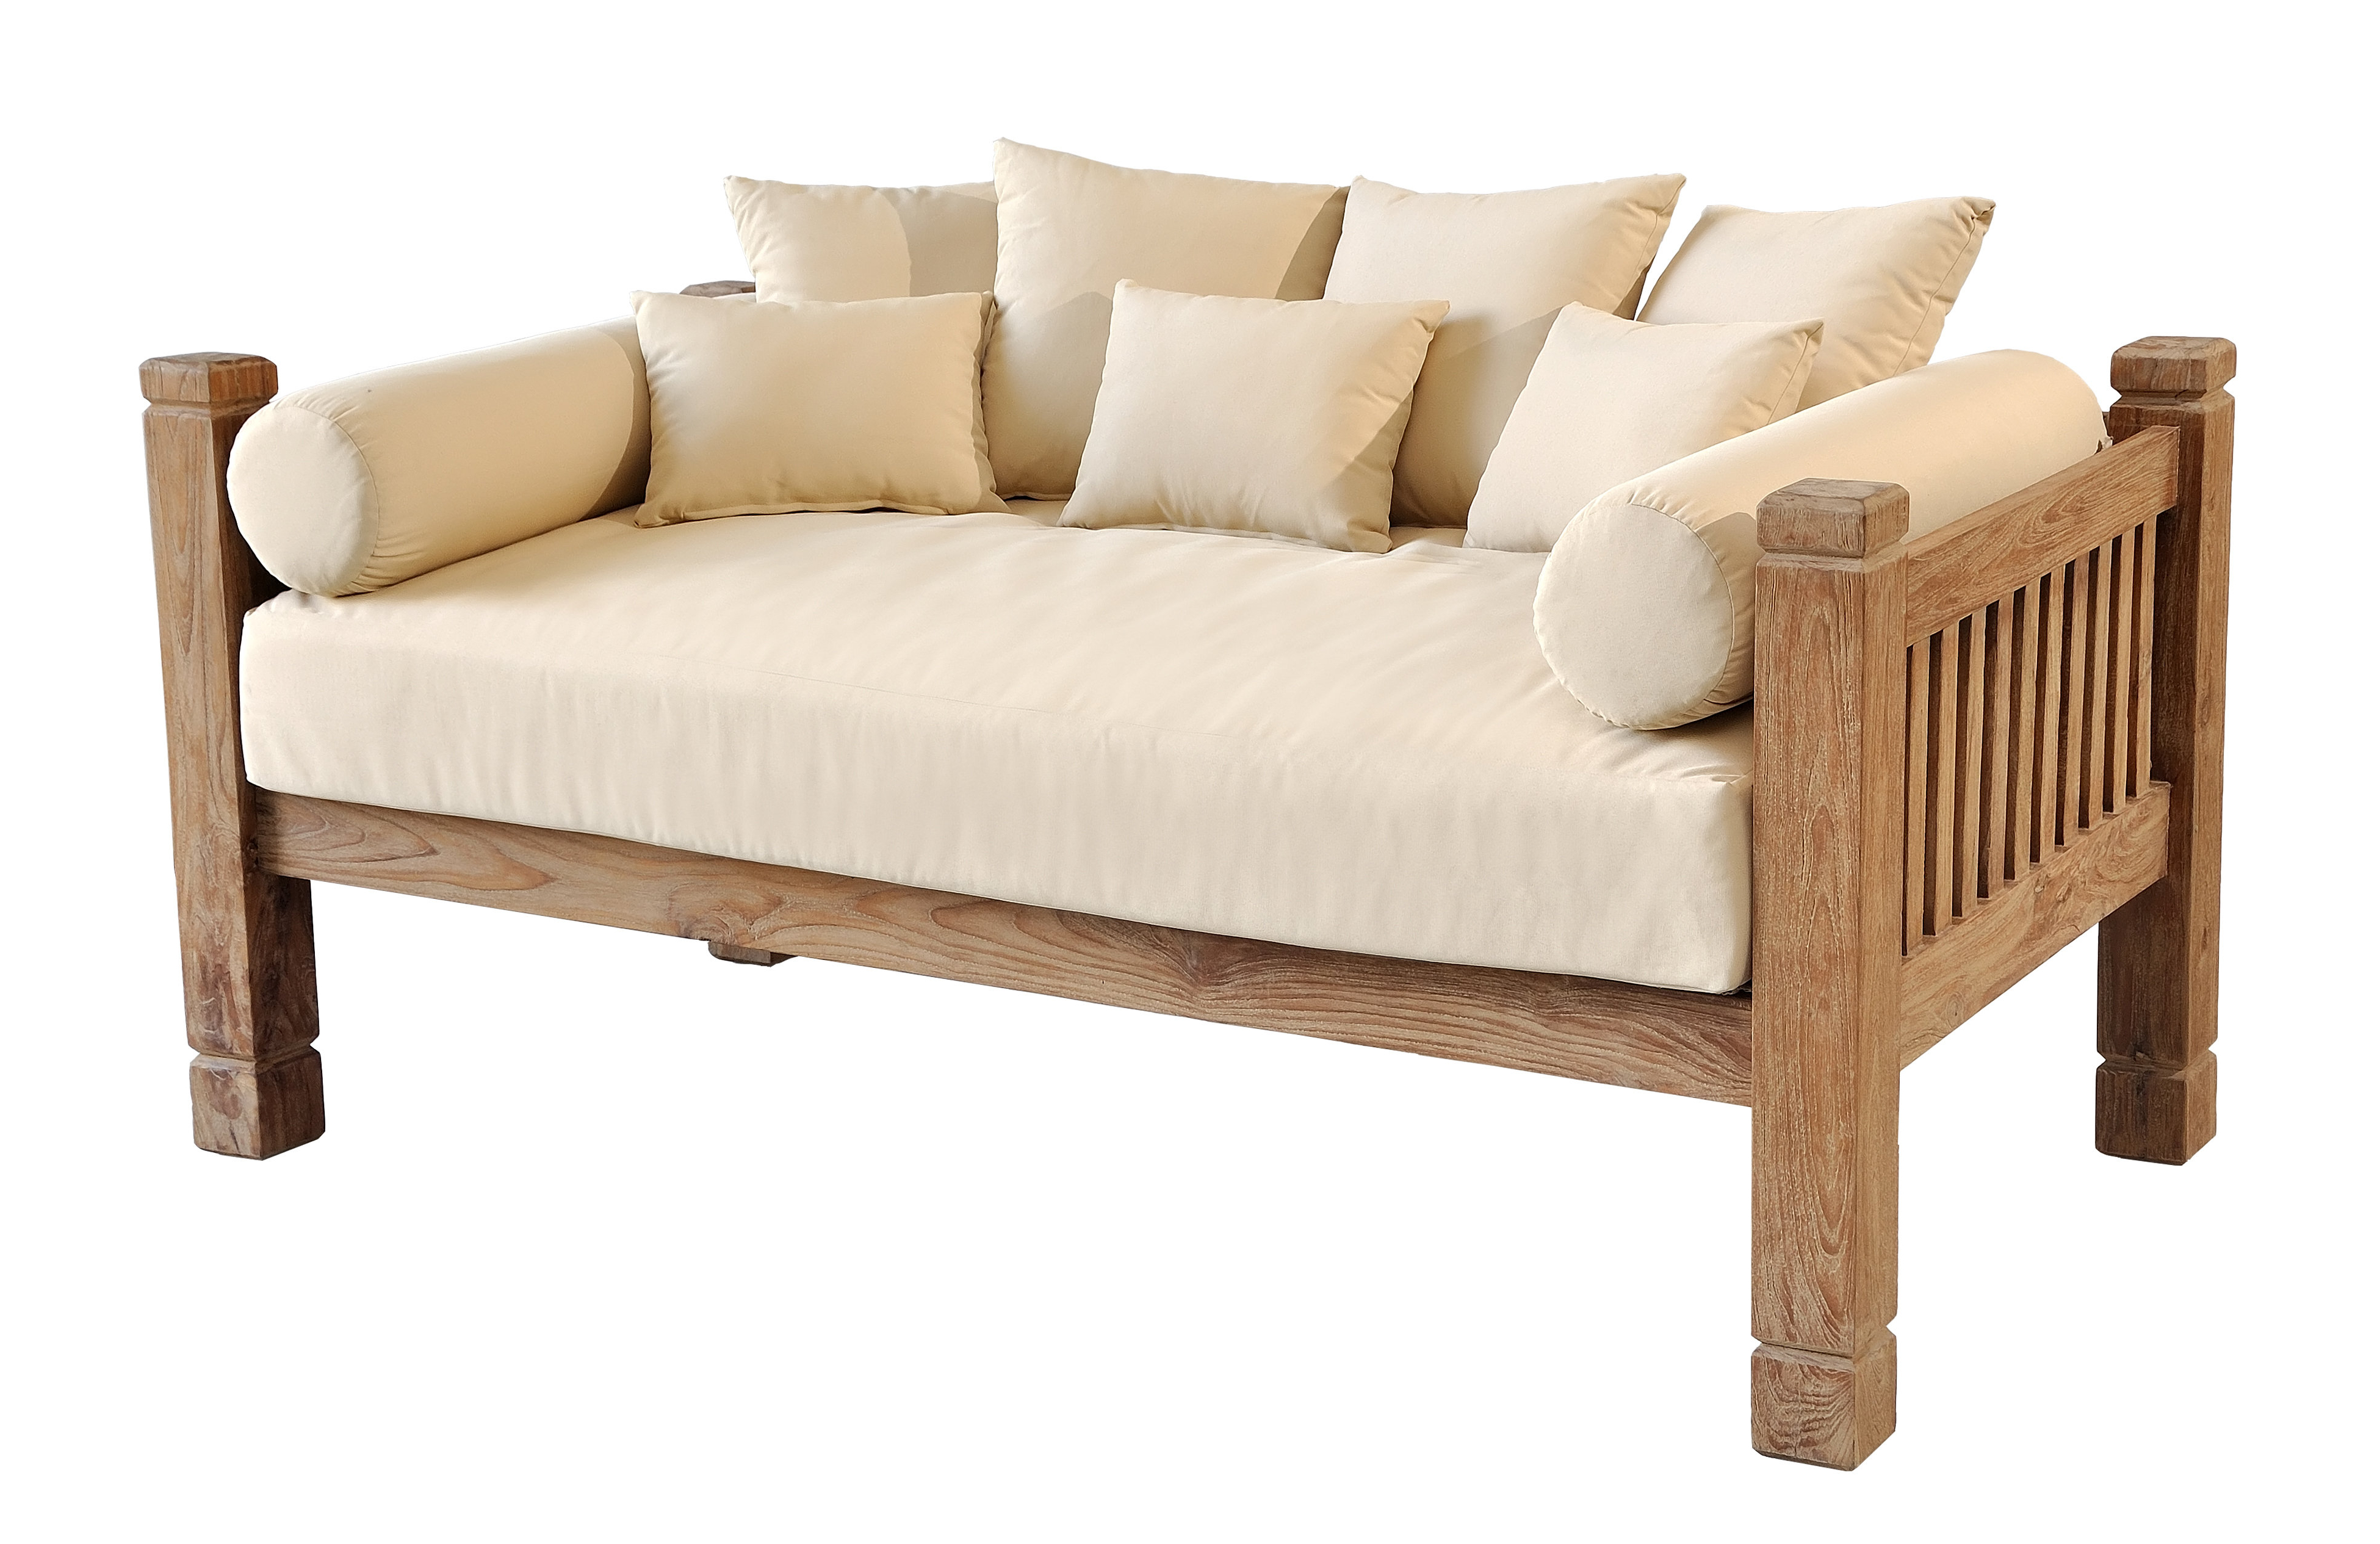 Perine Teak Patio Daybed With Cushions With Current Roush Teak Patio Daybeds With Cushions (View 8 of 20)